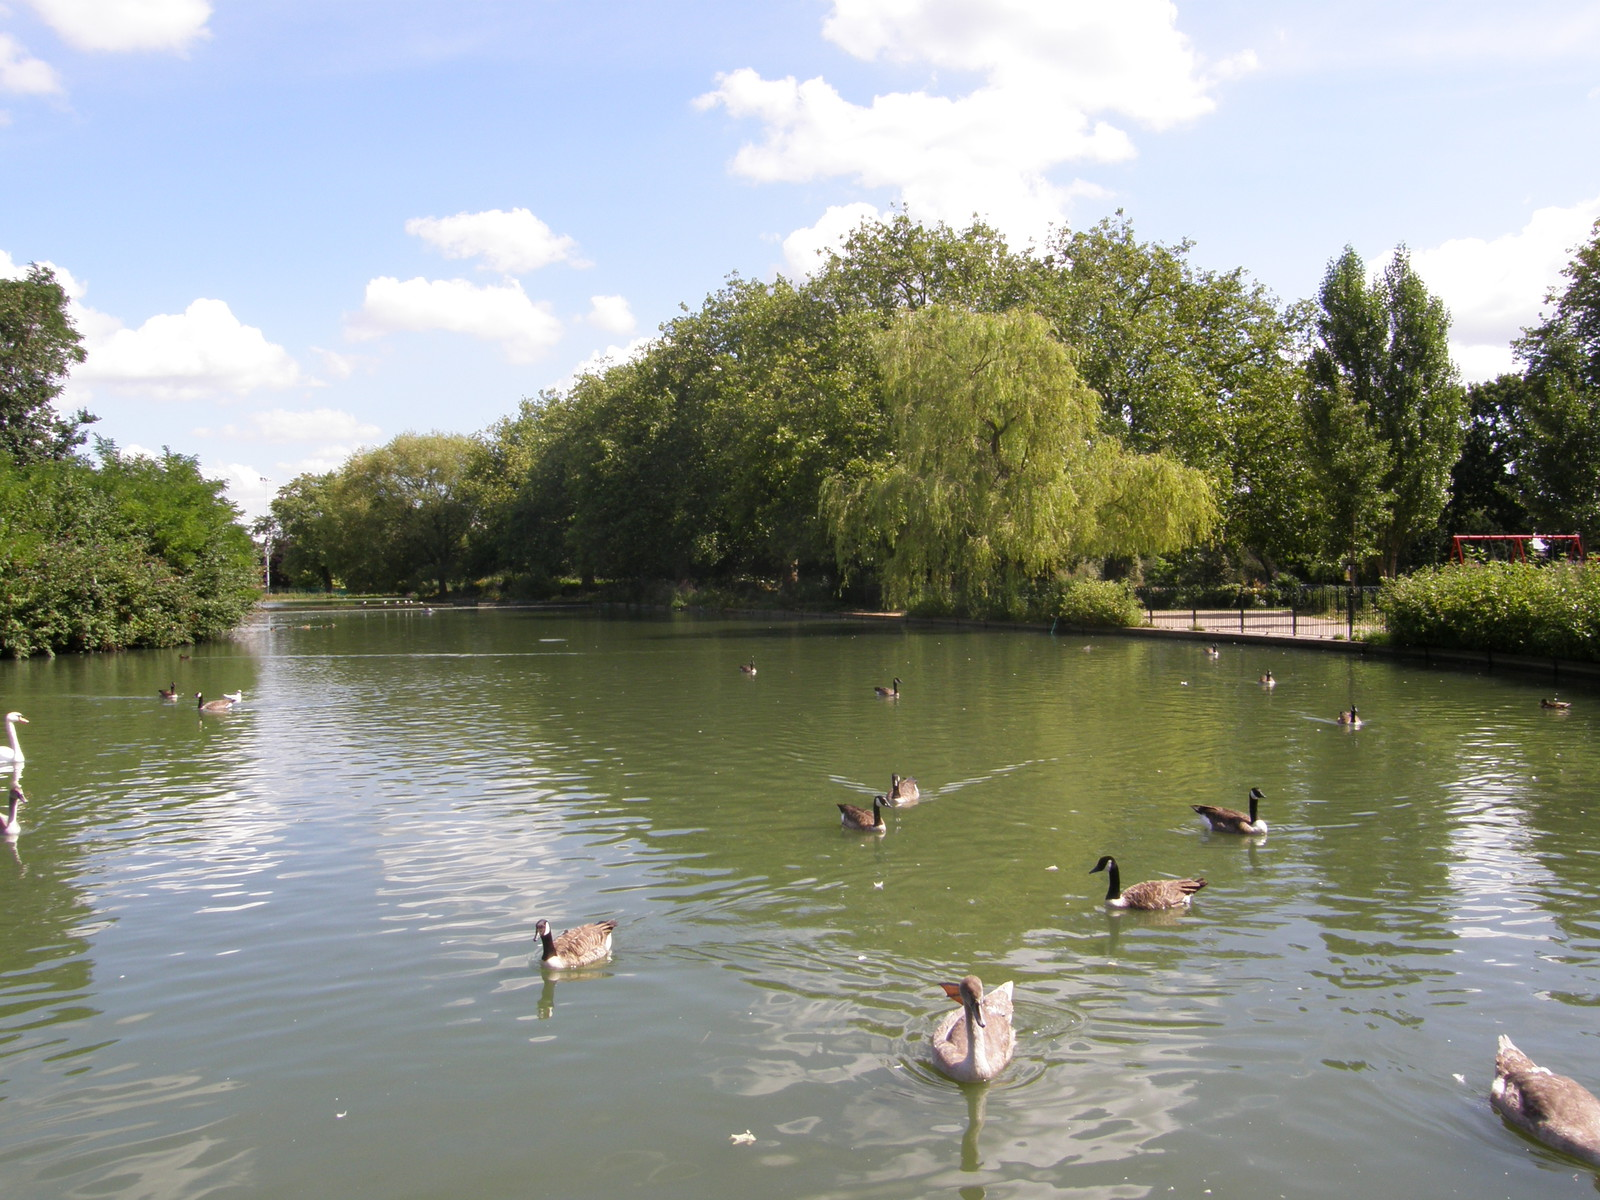 The boating lake in Finsbury Park